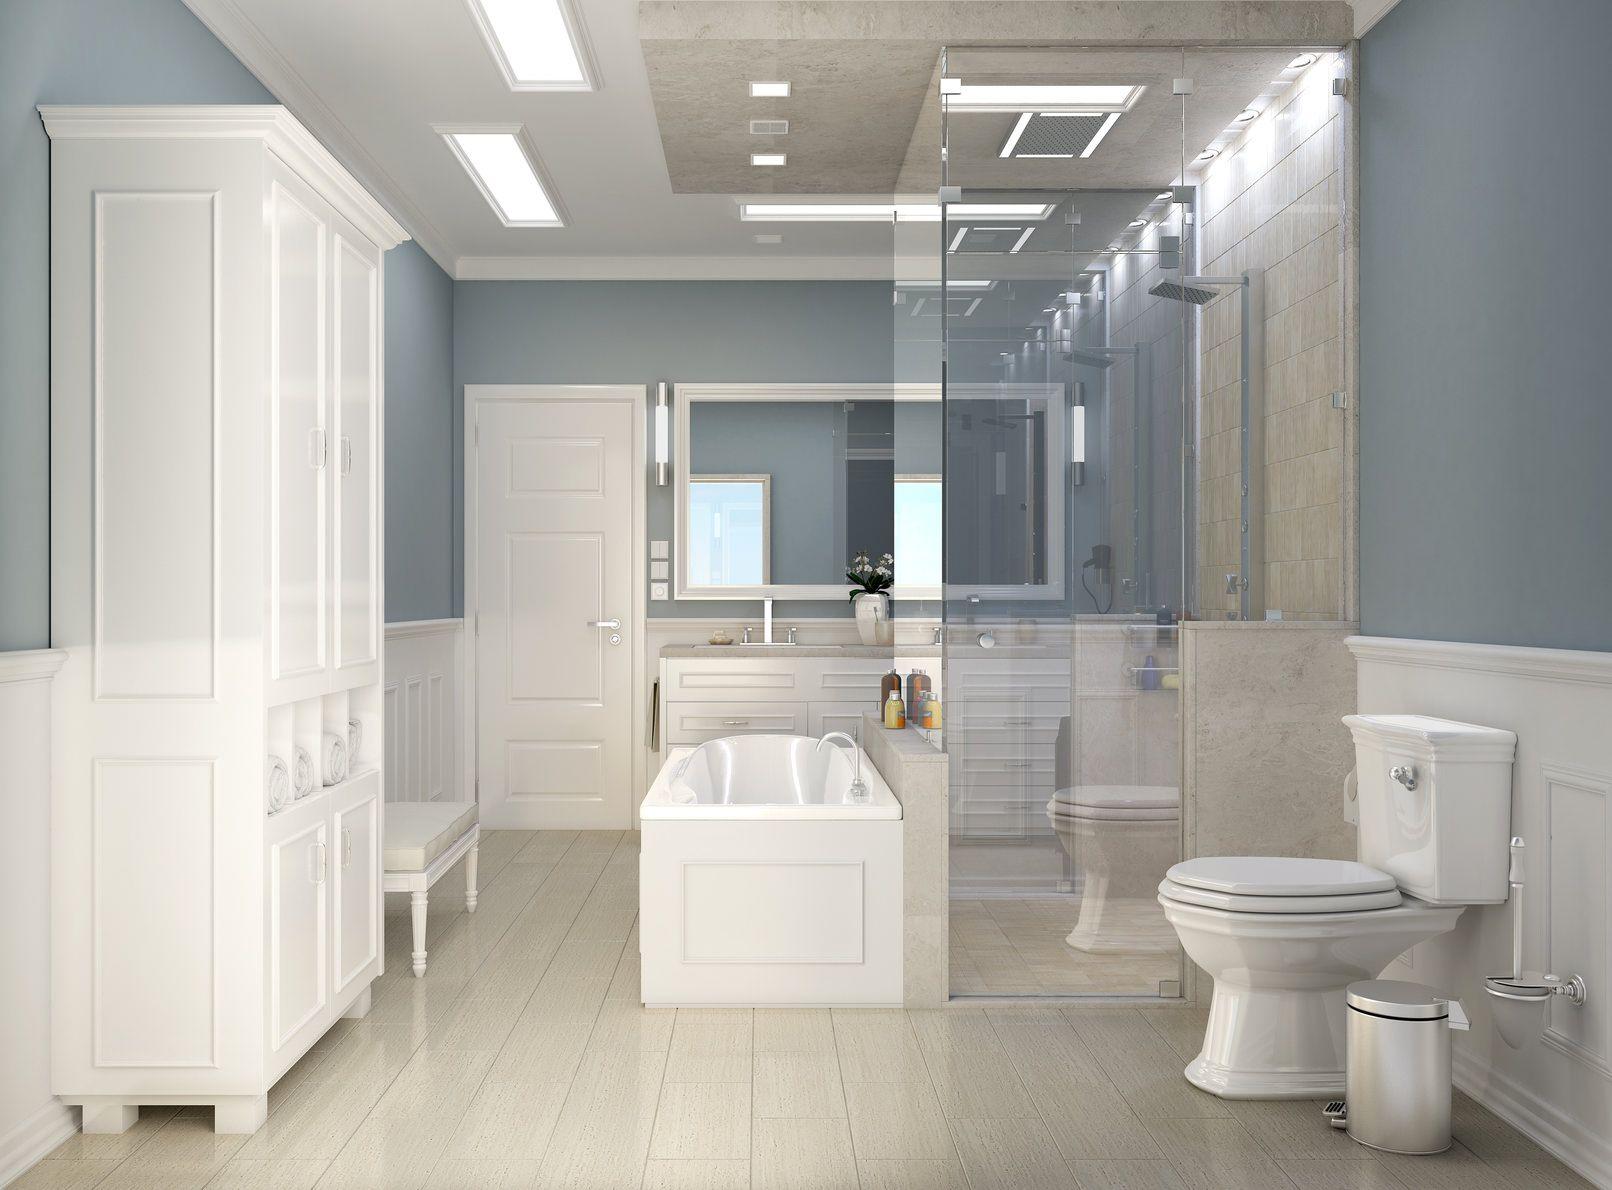 Beauty Modern Bathroom Tile Designs 43 About Remodel home design classic  ideas with Modern Bathroom Tile Designs